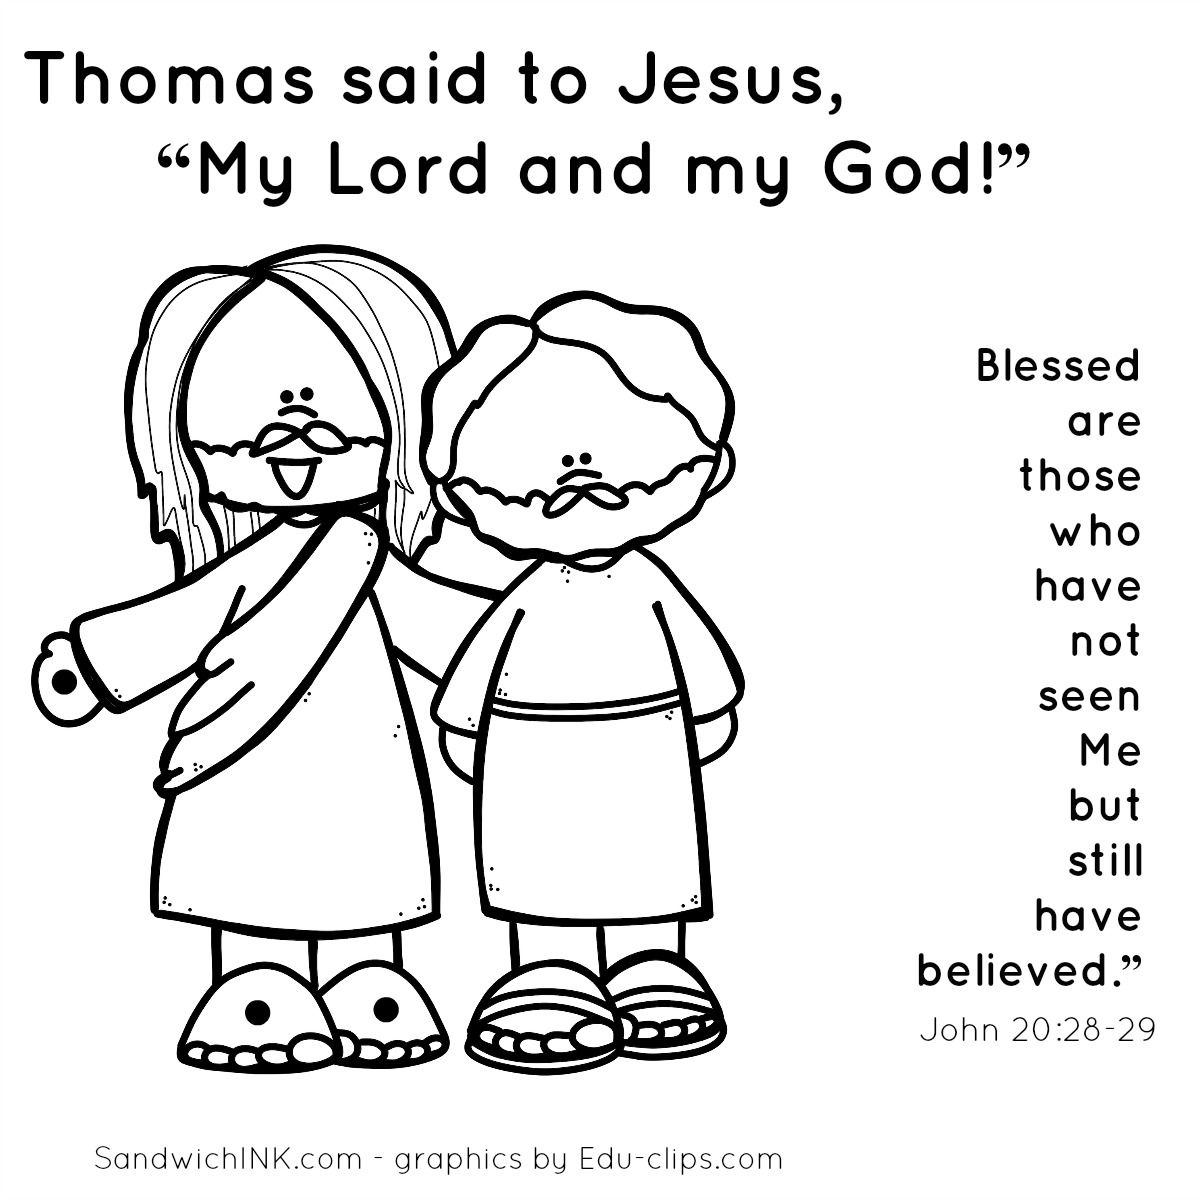 Coloring Page Memory Verse Fun For Grandkids And Sweet Reminders For Our Elderly Parents As Well Memory Verse Fun Arts And Crafts Coloring Pages